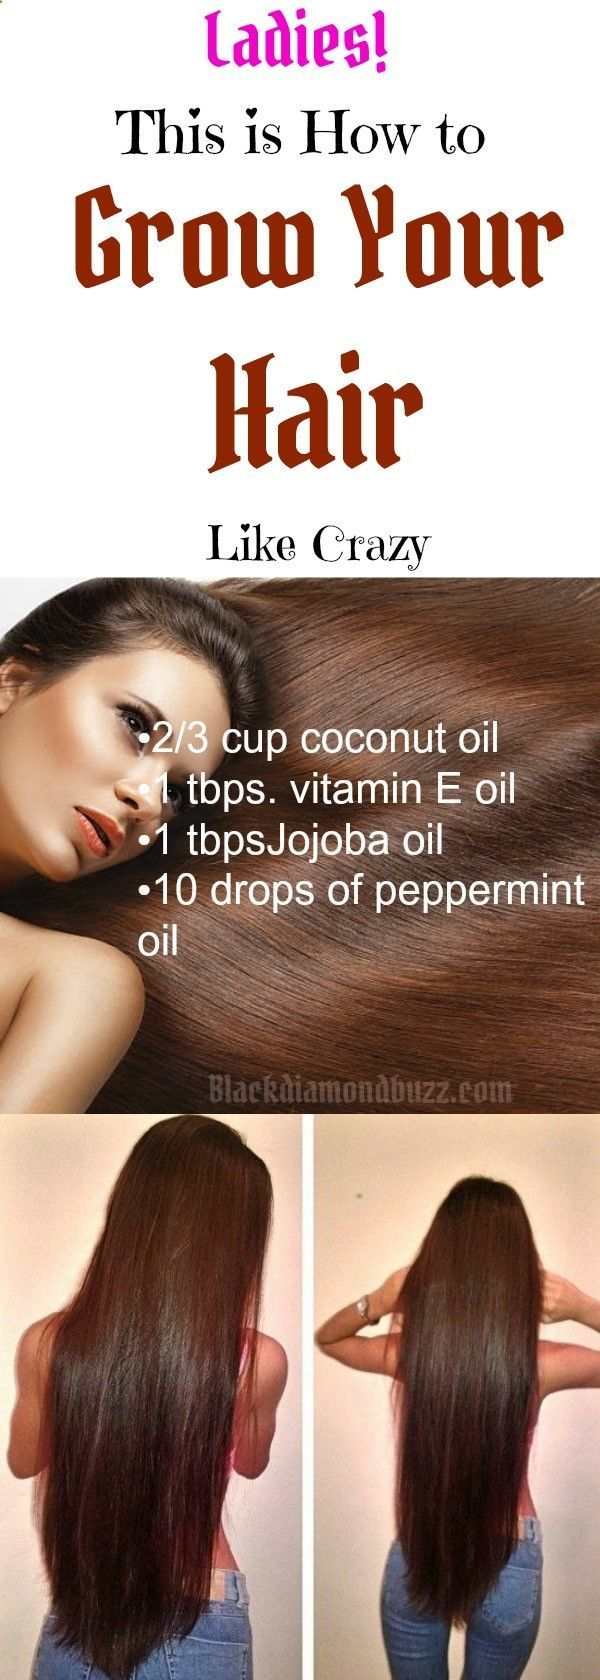 Hair Growth Tips: How to Grow Your Hair Like Crazy with Coconut Oil Hair Growth Recipes •2/3 cup coconut oil •1 tablespoon vitamin E oil •1 tablespoon Jojoba oil •10 drops of your favorite essential oil – Peppermint oil